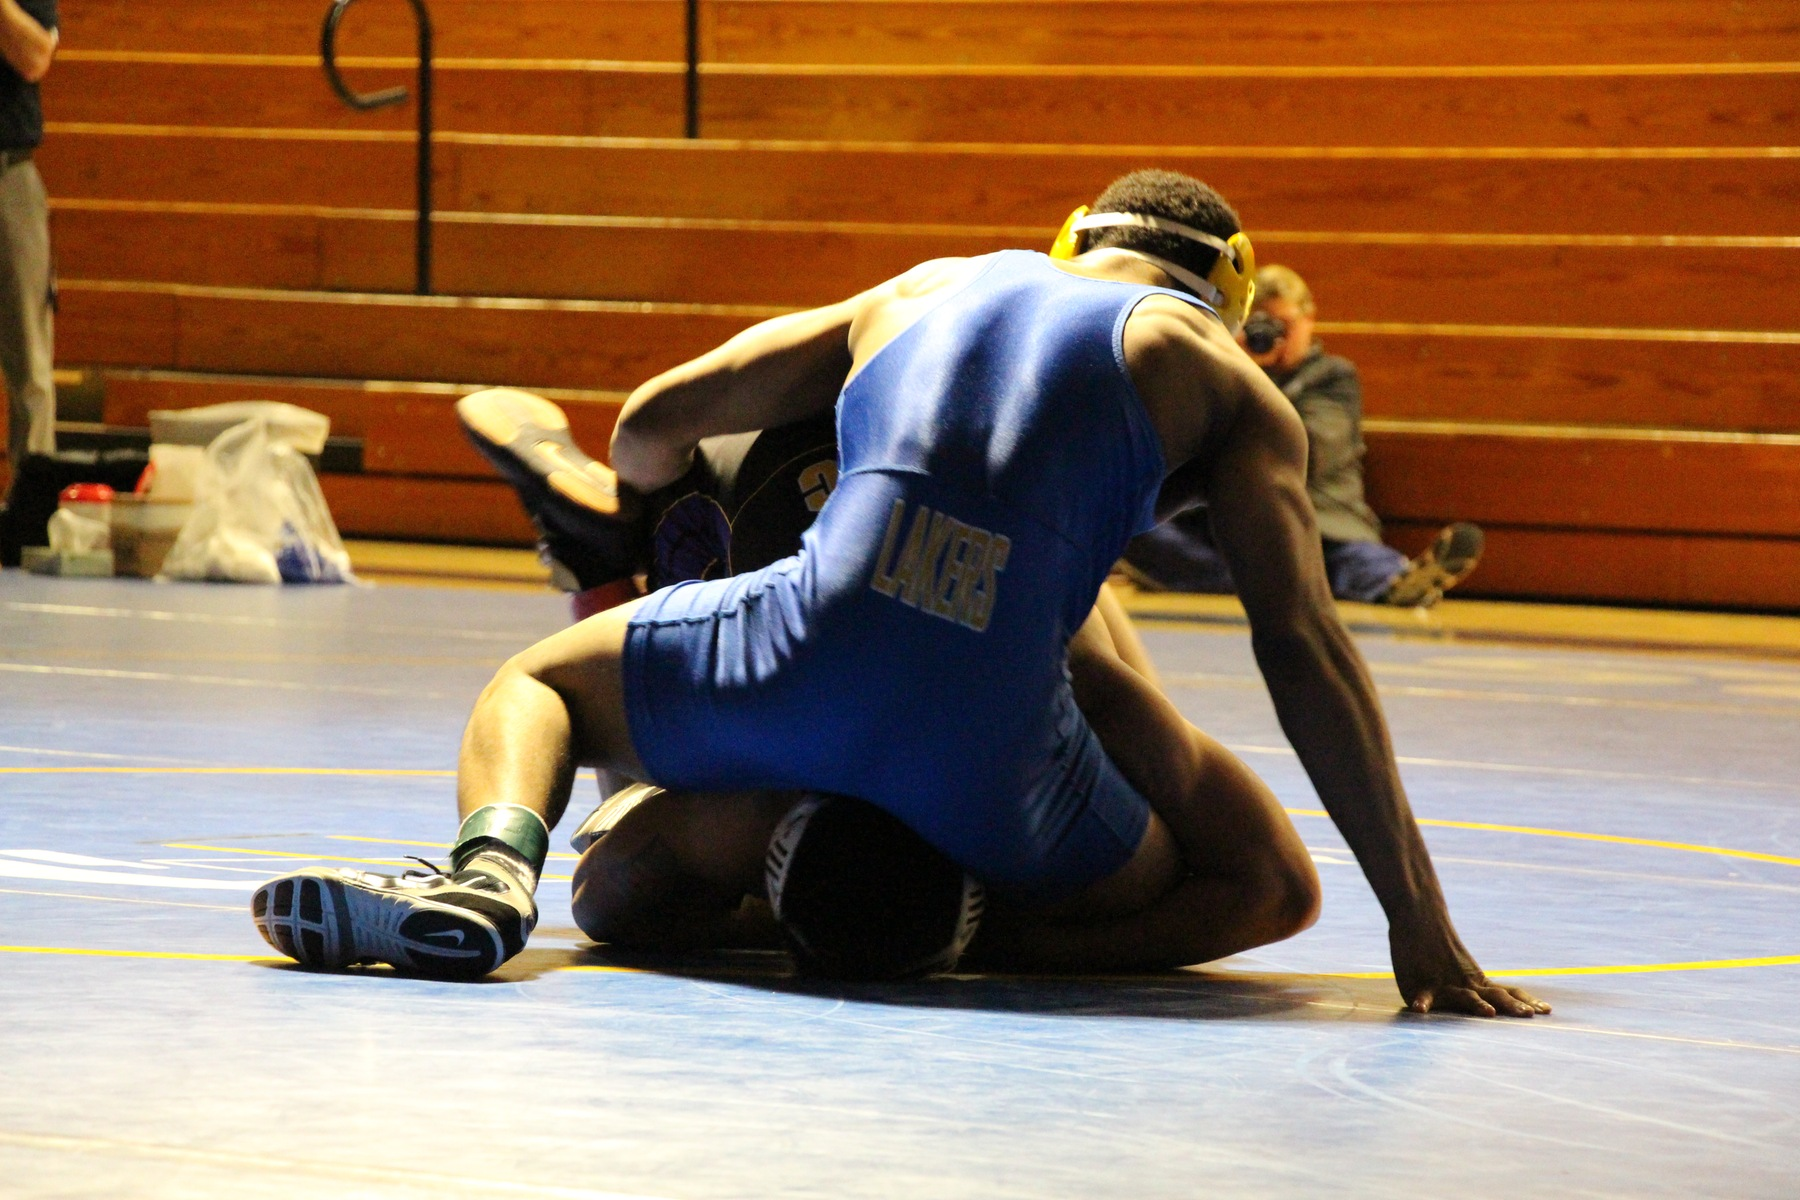 LAKER WRESTLING OPENS SEASON AT YELLOWJACKET OPEN